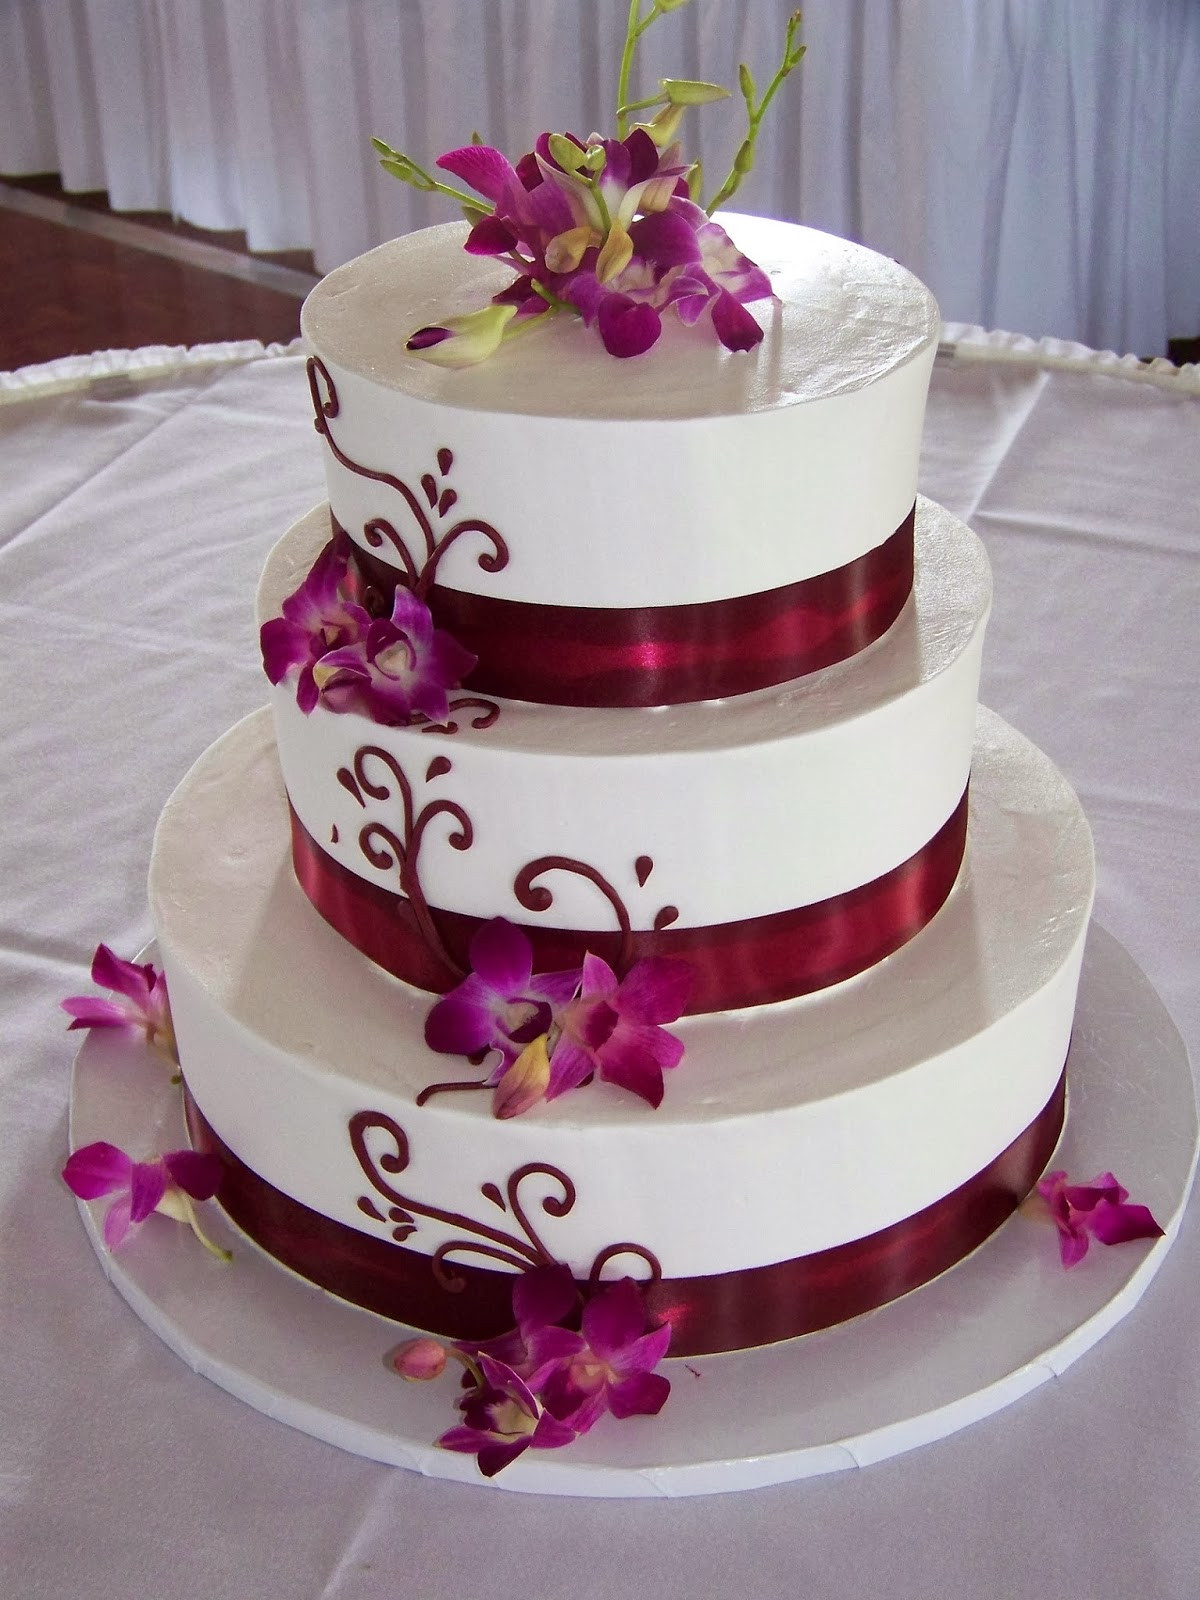 Wedding Cakes Picture Gallery  7 wonders of the world Wedding Cake Hd Gallery